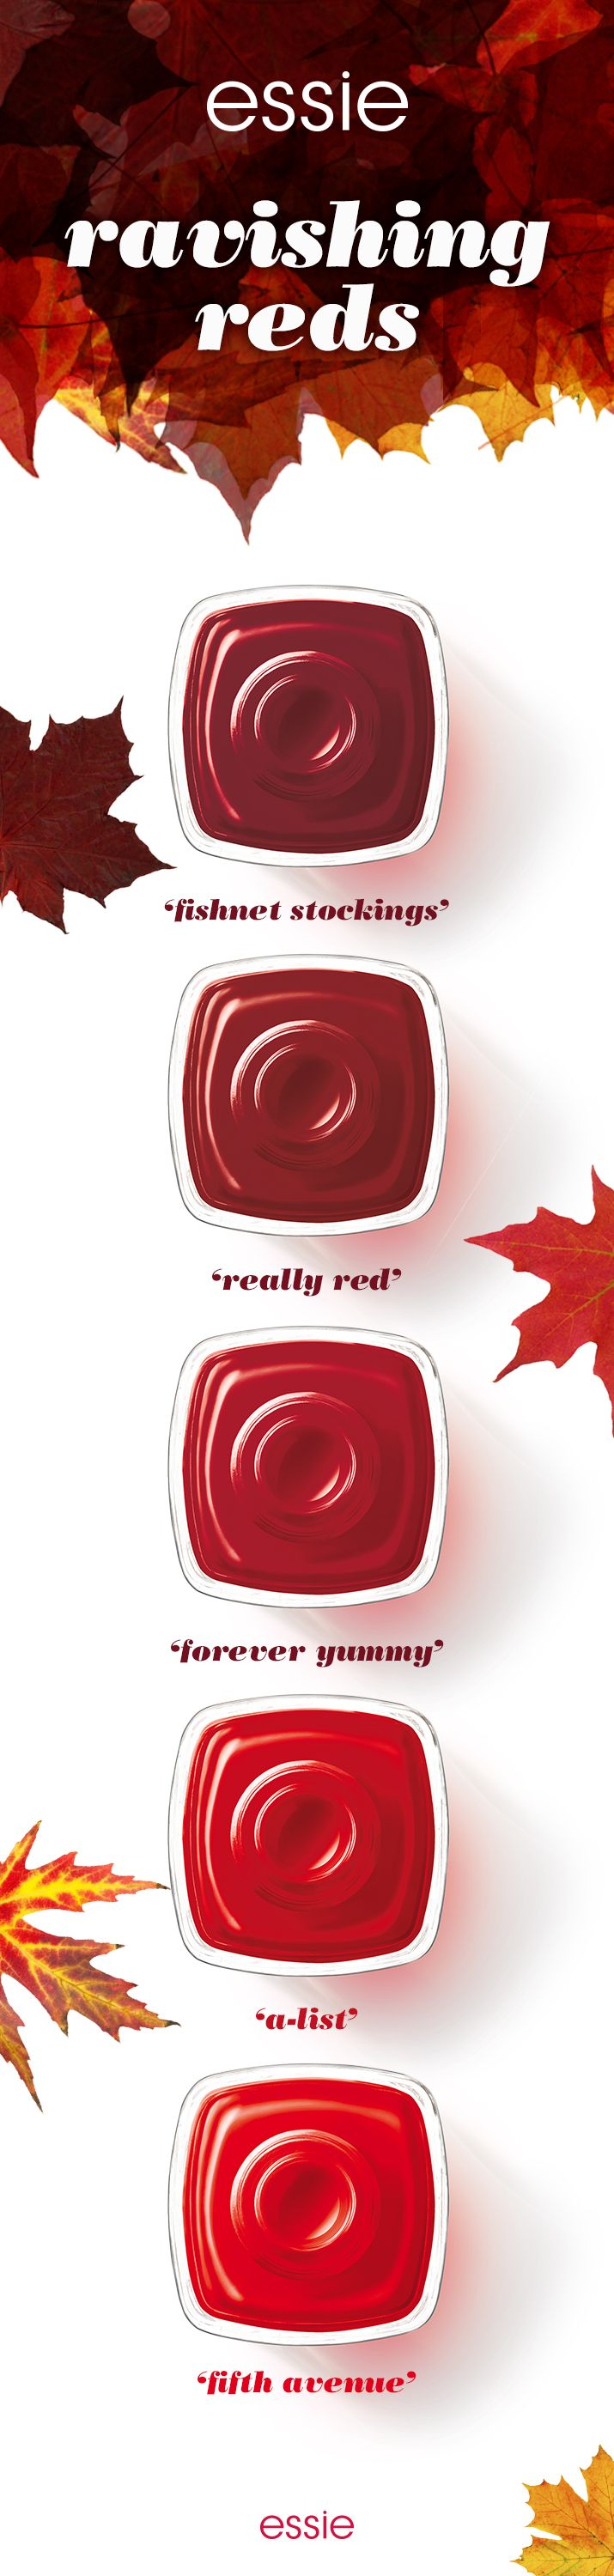 The color of love never goes out of style. This fall, embrace all the ravishing essie reds. Feel the sophistication of 'a-list', pop of 'fifth avenue', boldness of 'really red', brightness of 'forever yummy' and sensuality of 'fishnet stockings'. So many reds, so many reasons to love them.